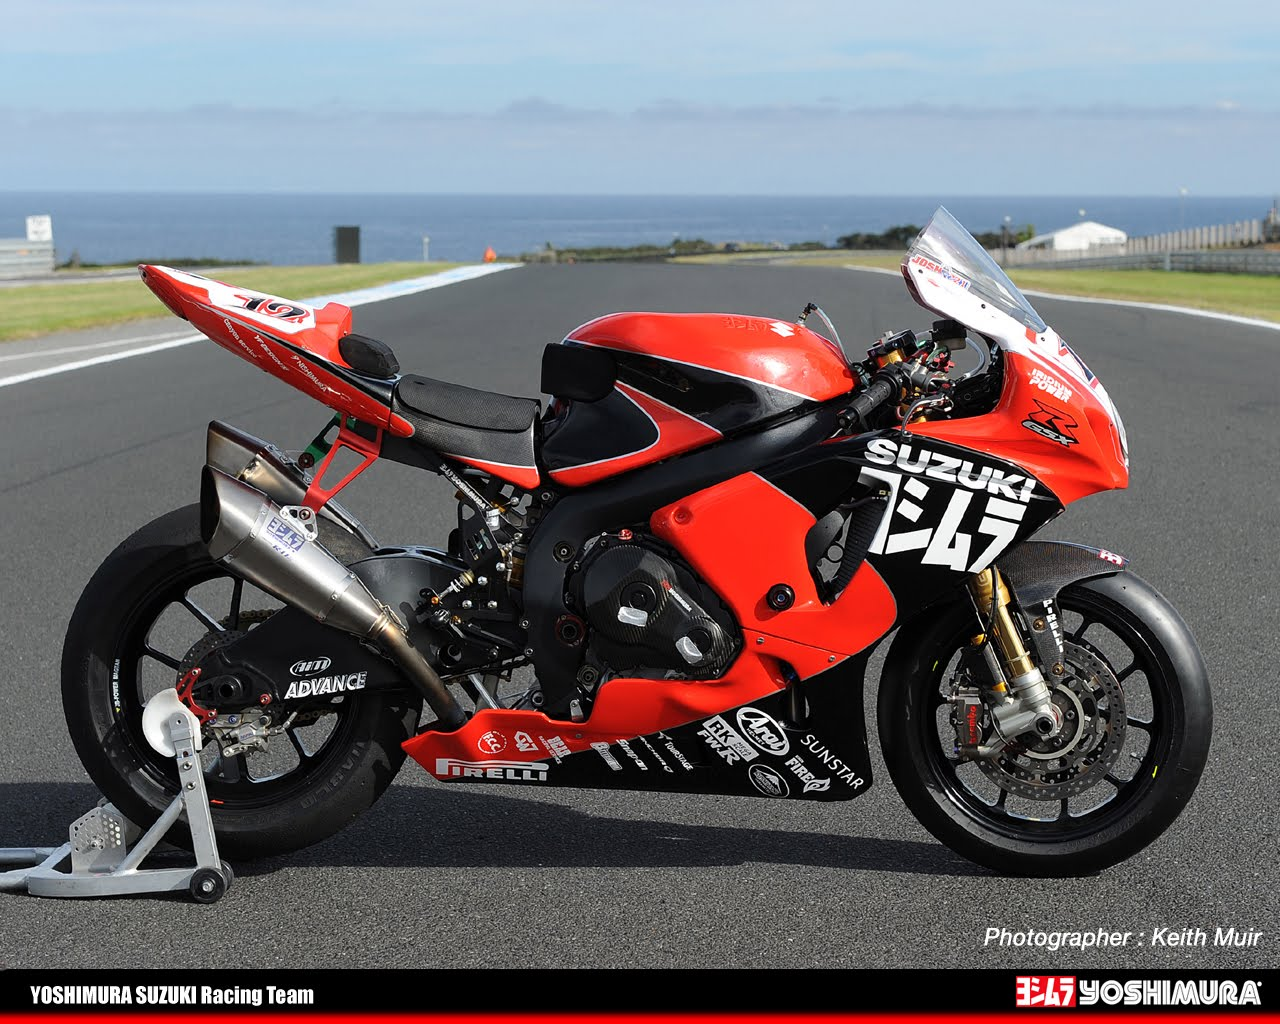 racing caf yoshimura gsx r 1000 k11 wsbk 2011. Black Bedroom Furniture Sets. Home Design Ideas